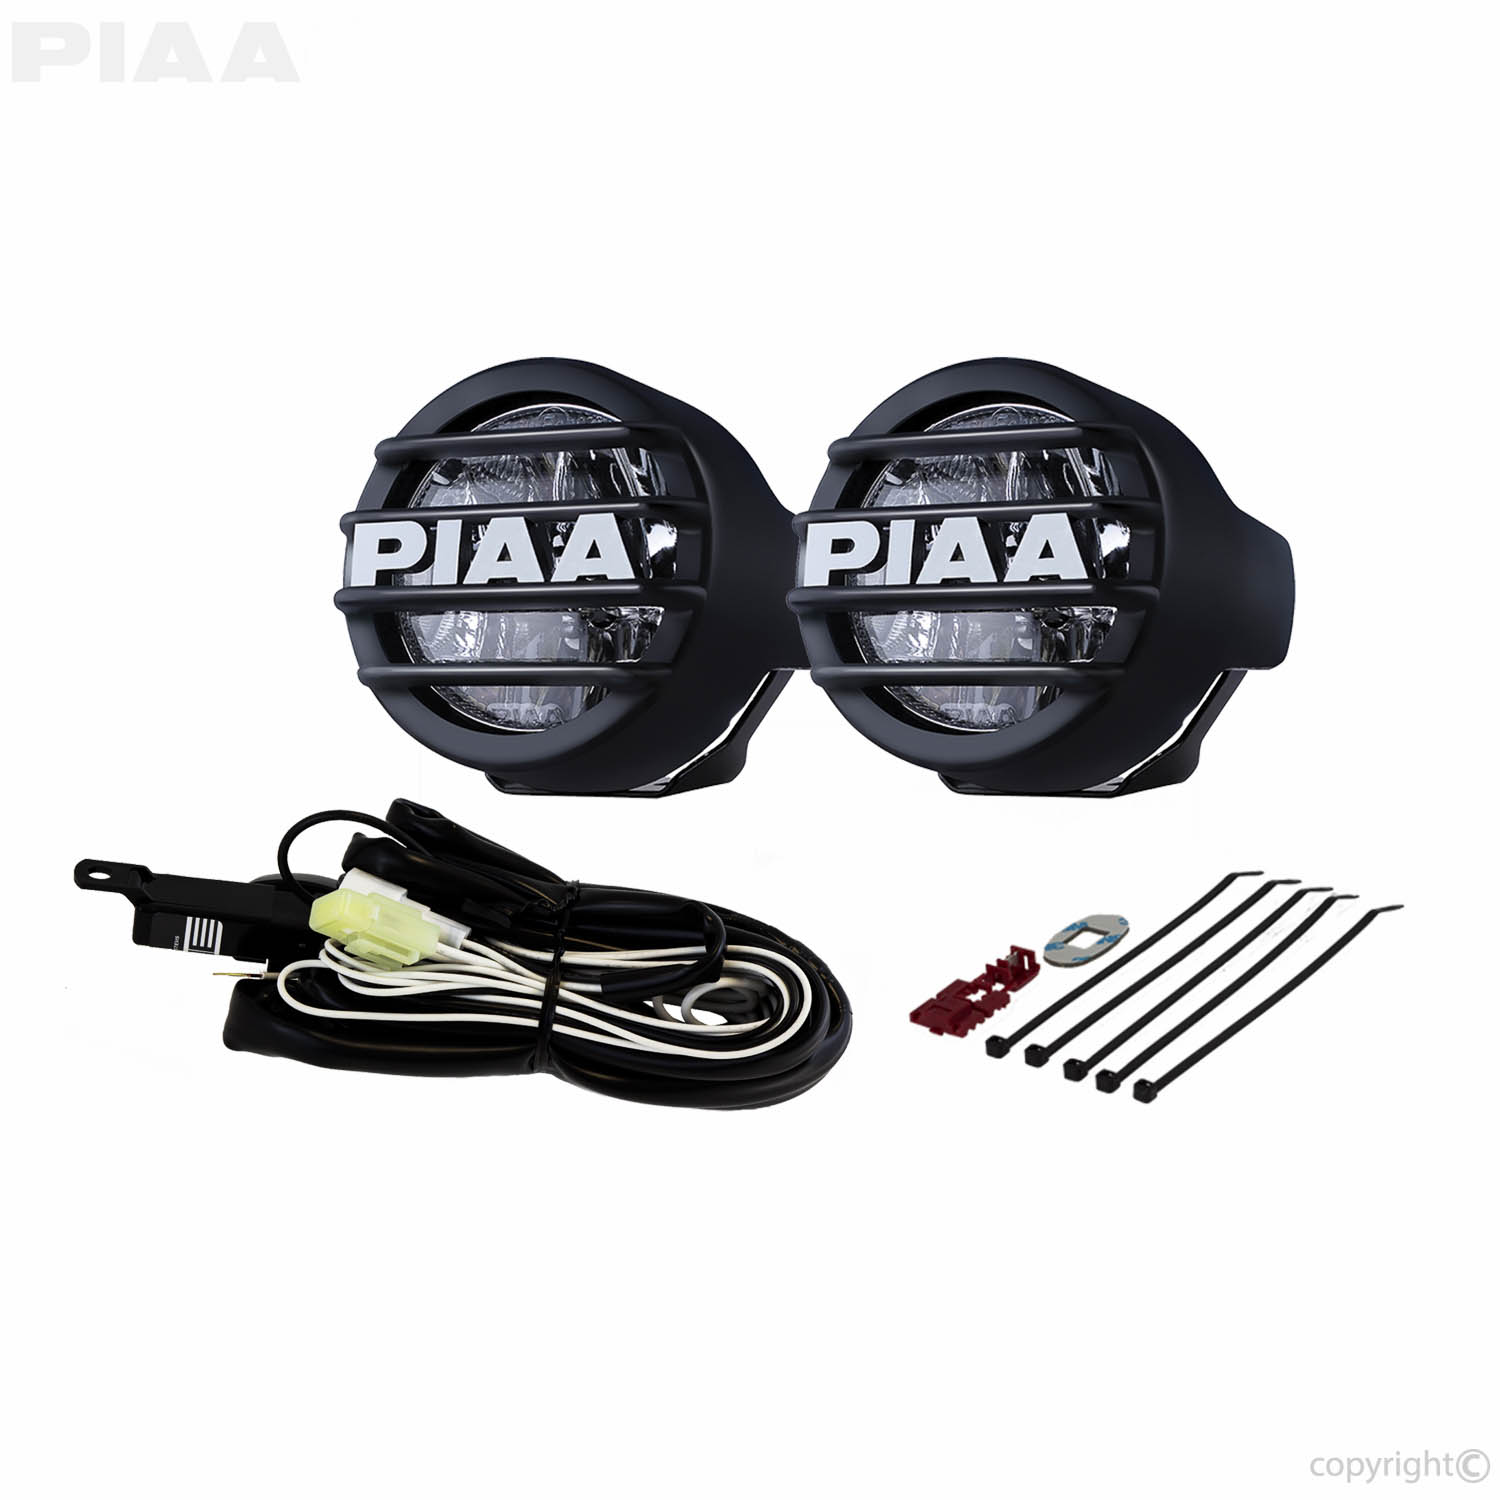 piaa 73532 530 contents hr?bw=1000&w=1000&bh=1000&h=1000 piaa lp530 3 5\